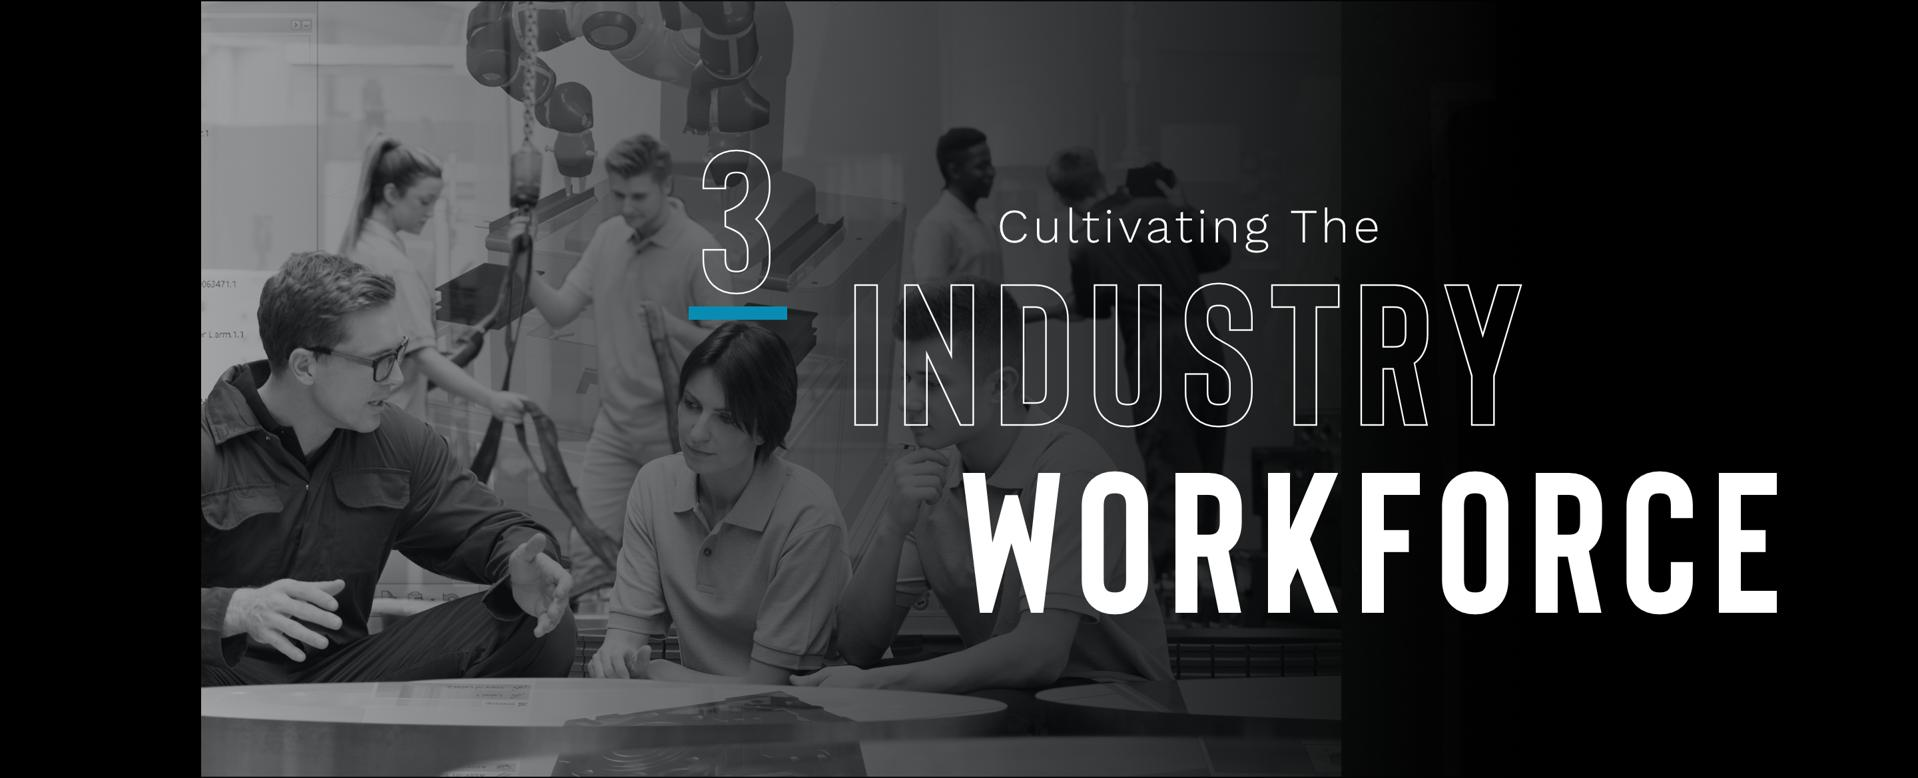 3. Cultivating The Industry Workforce